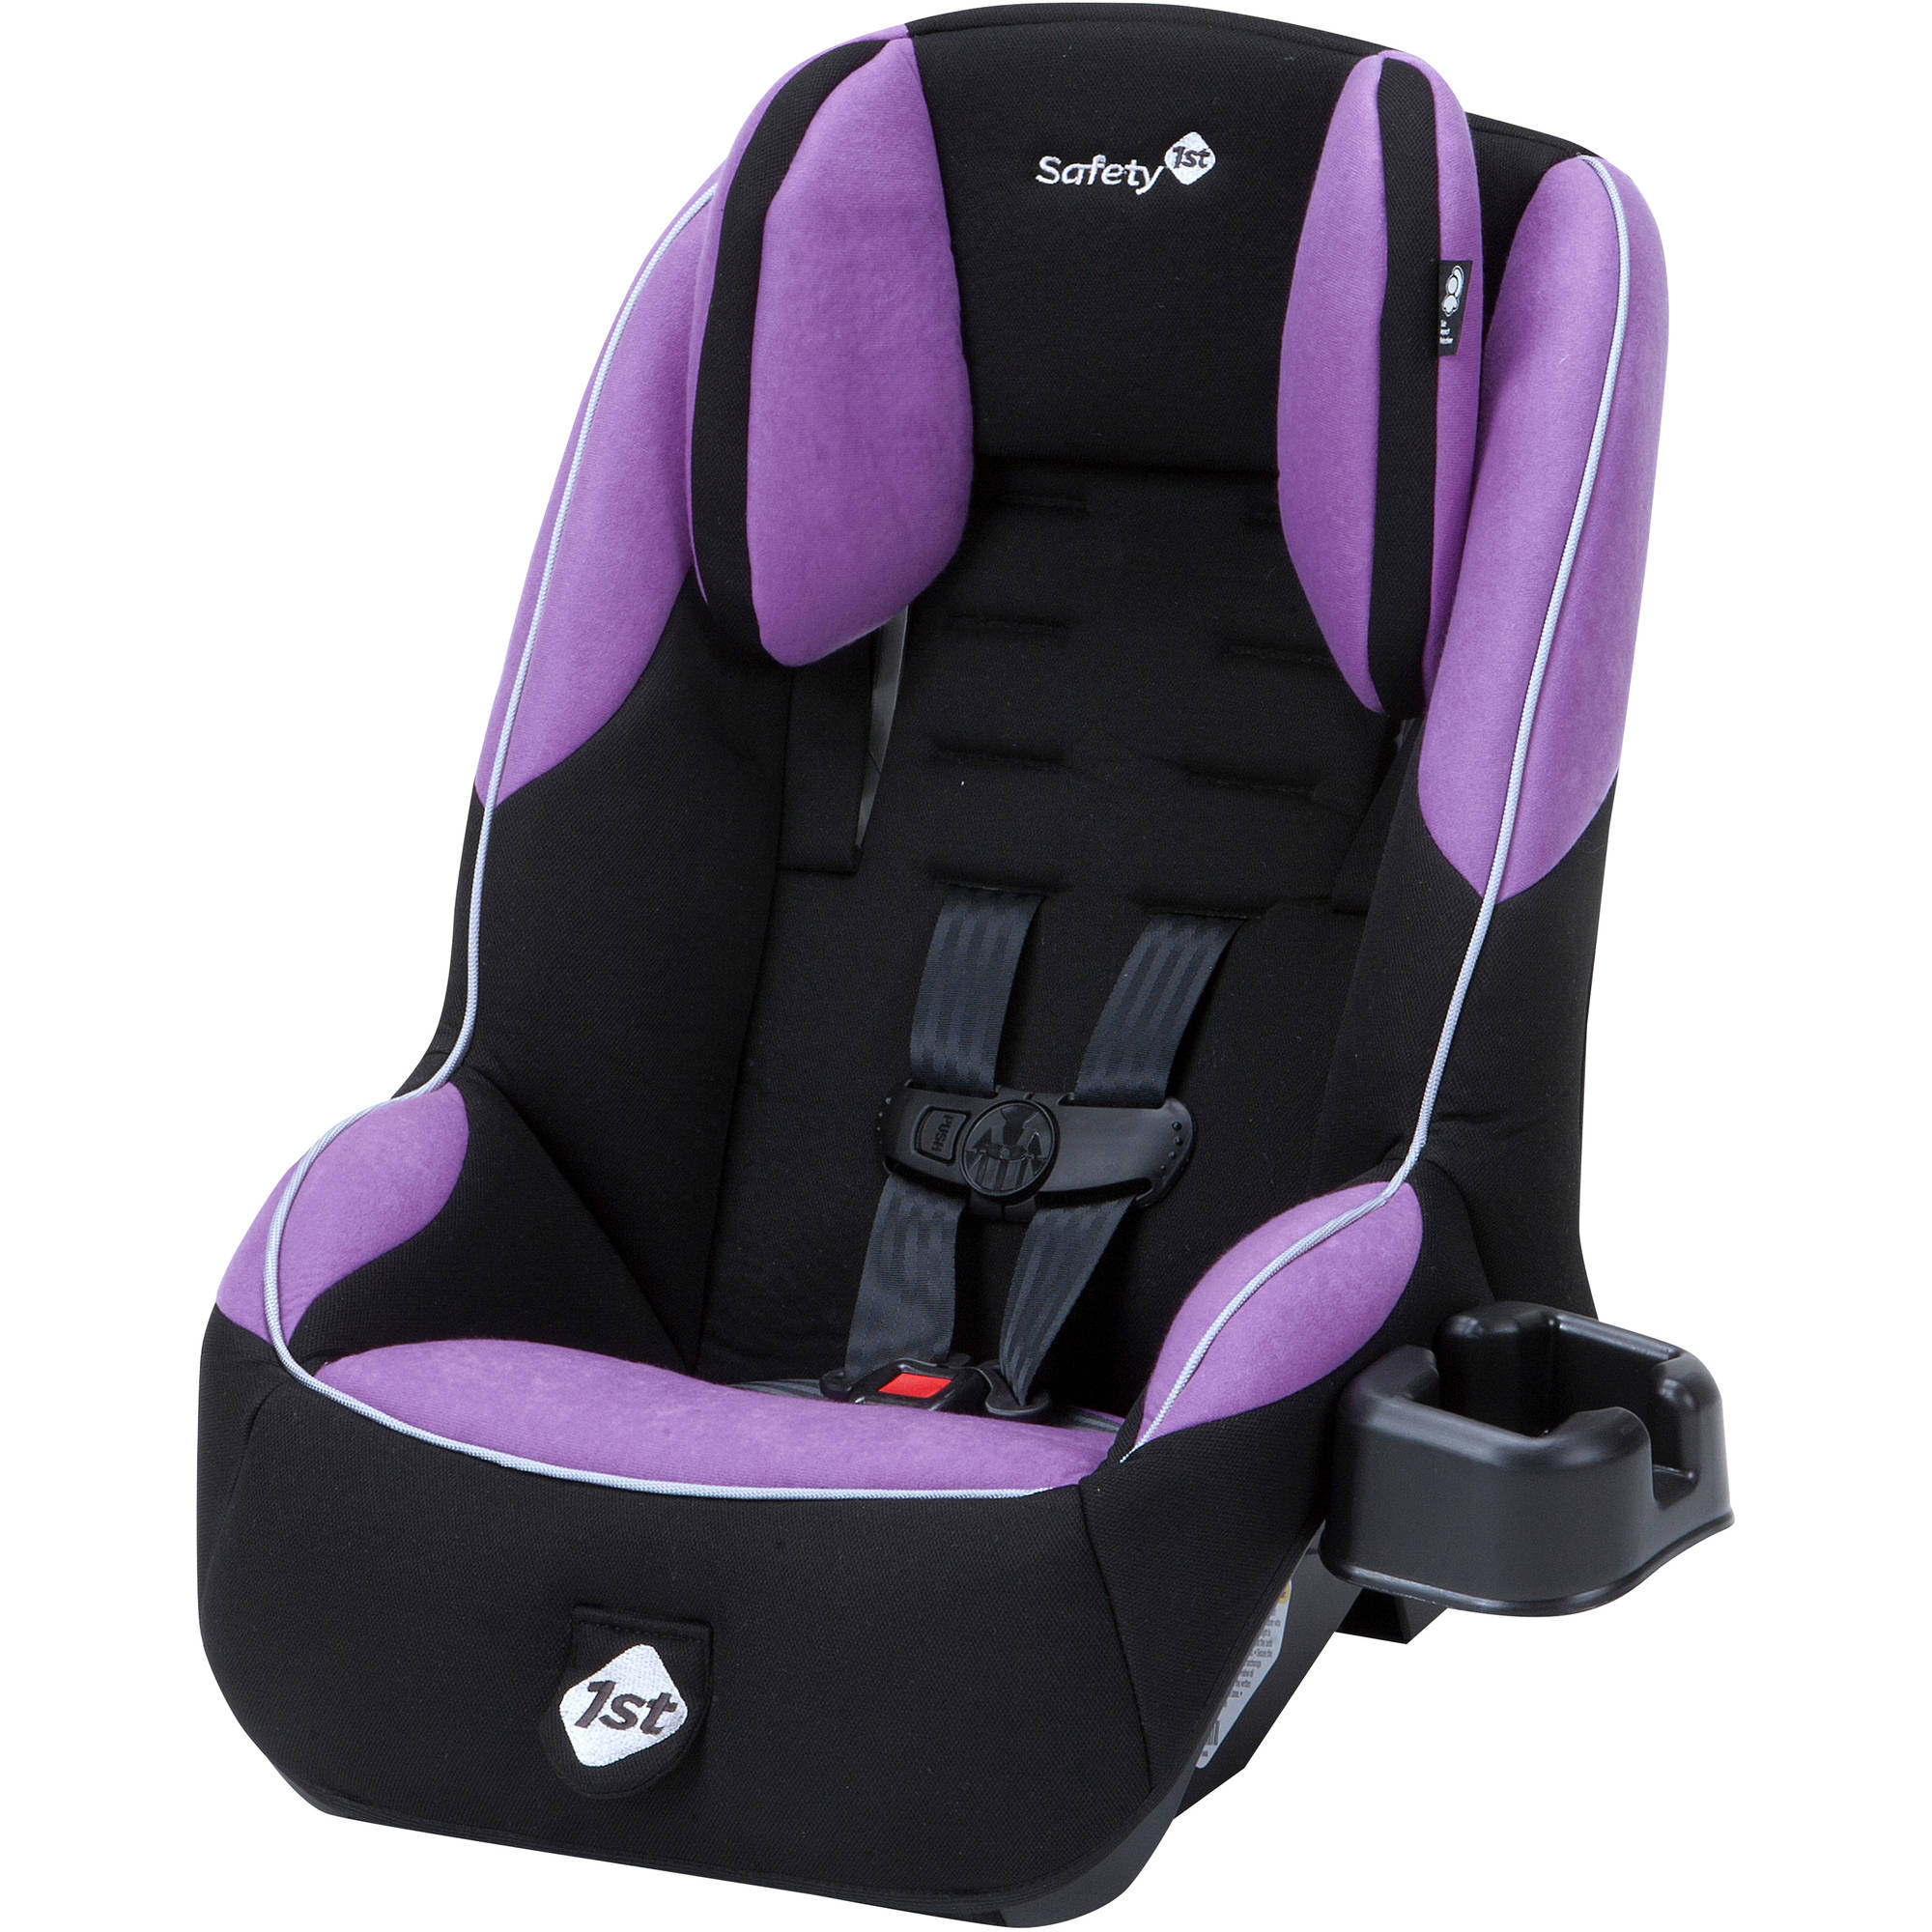 safety 1st guide 65 sport convertible car seat choose your color ebay. Black Bedroom Furniture Sets. Home Design Ideas